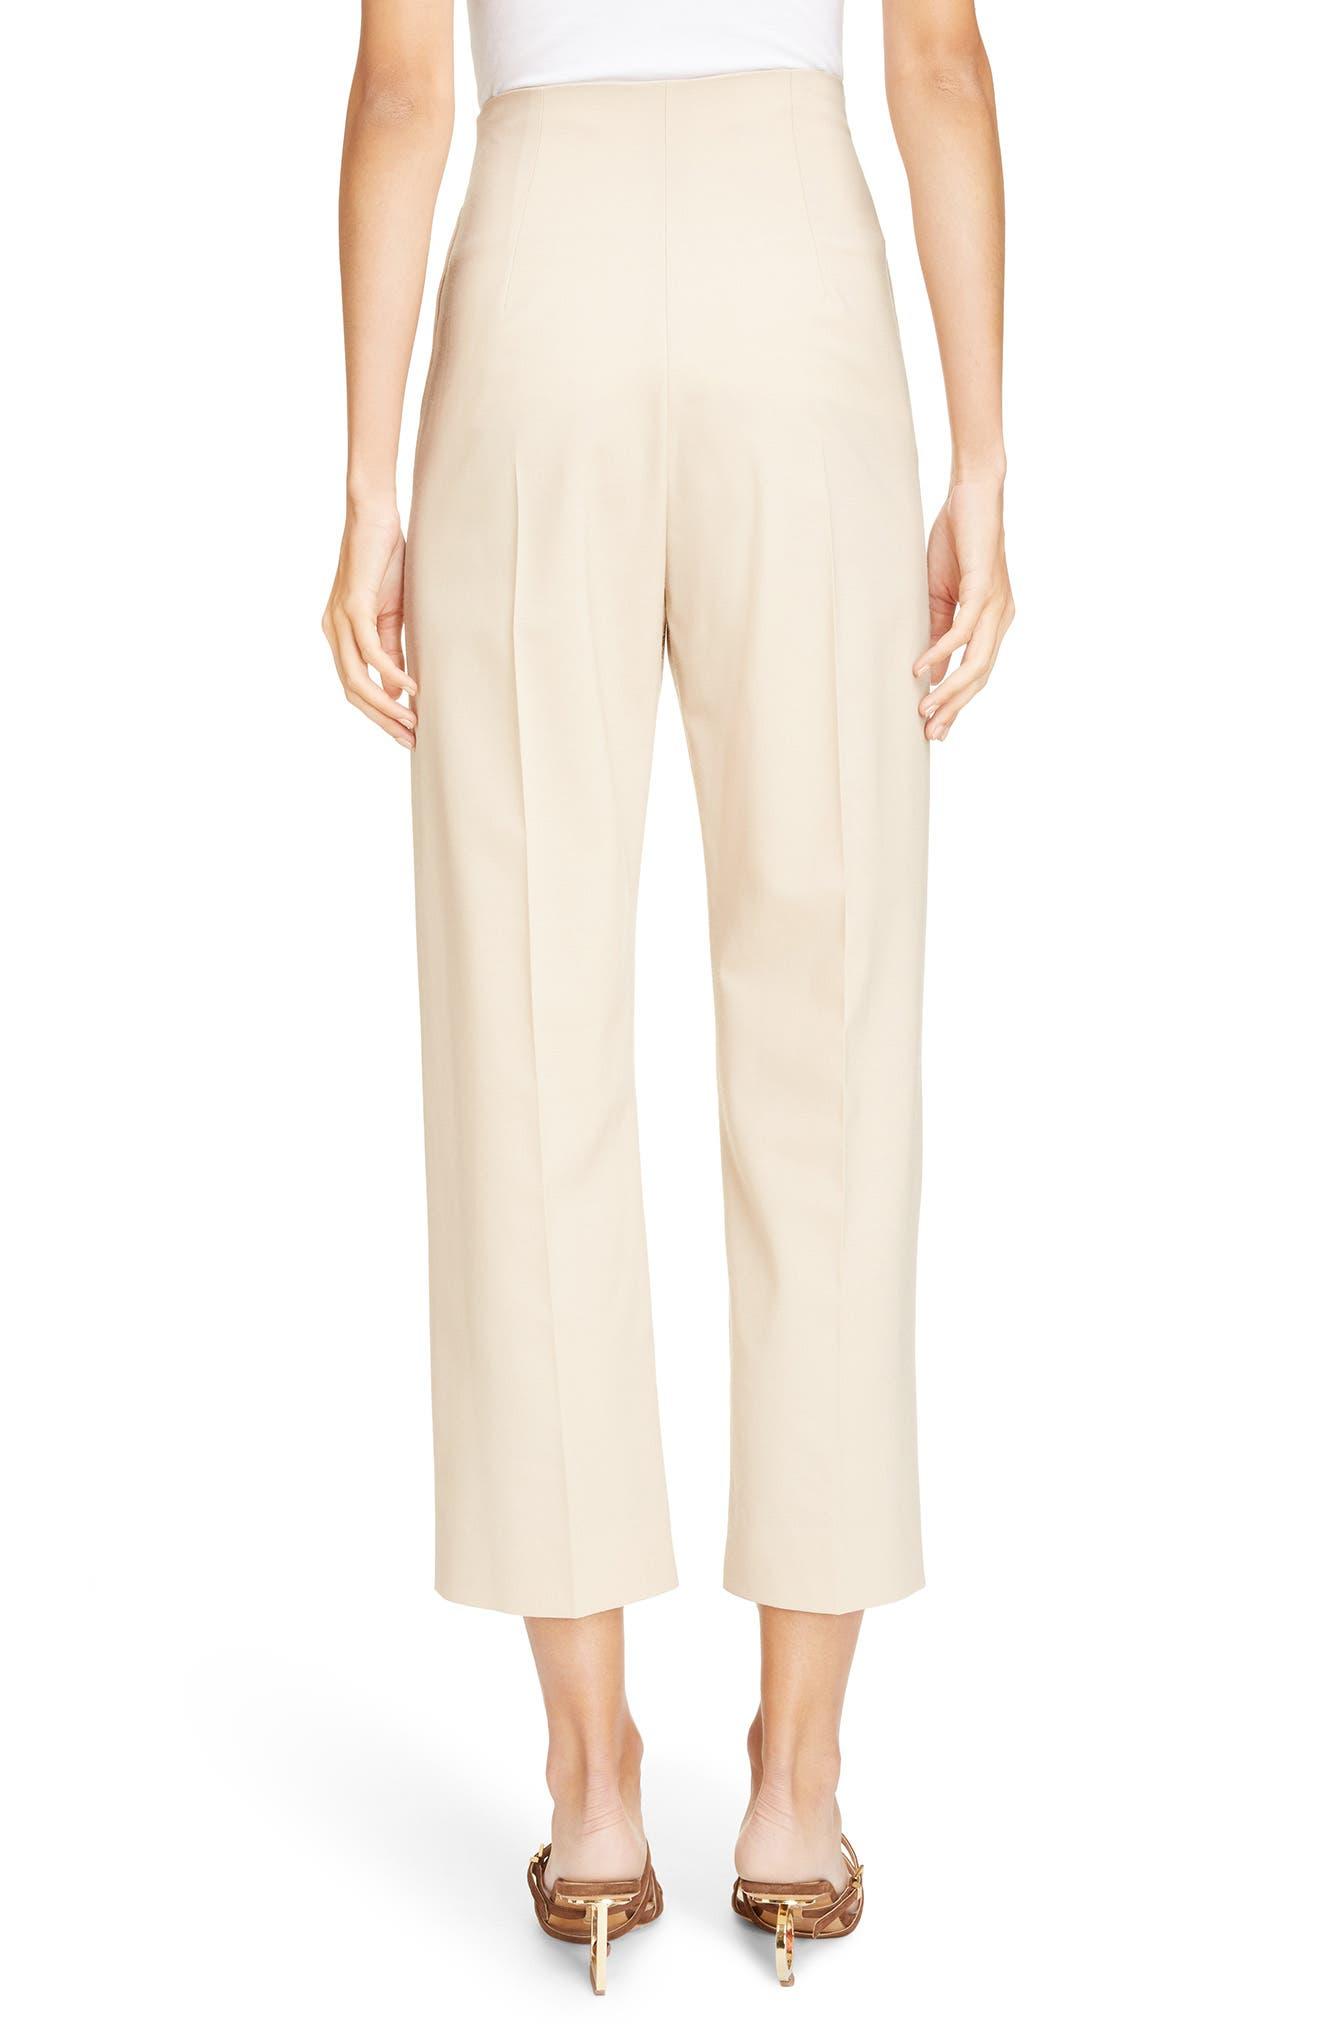 Le Pantalon Droit High Waist Crop Pants,                             Alternate thumbnail 2, color,                             Beige